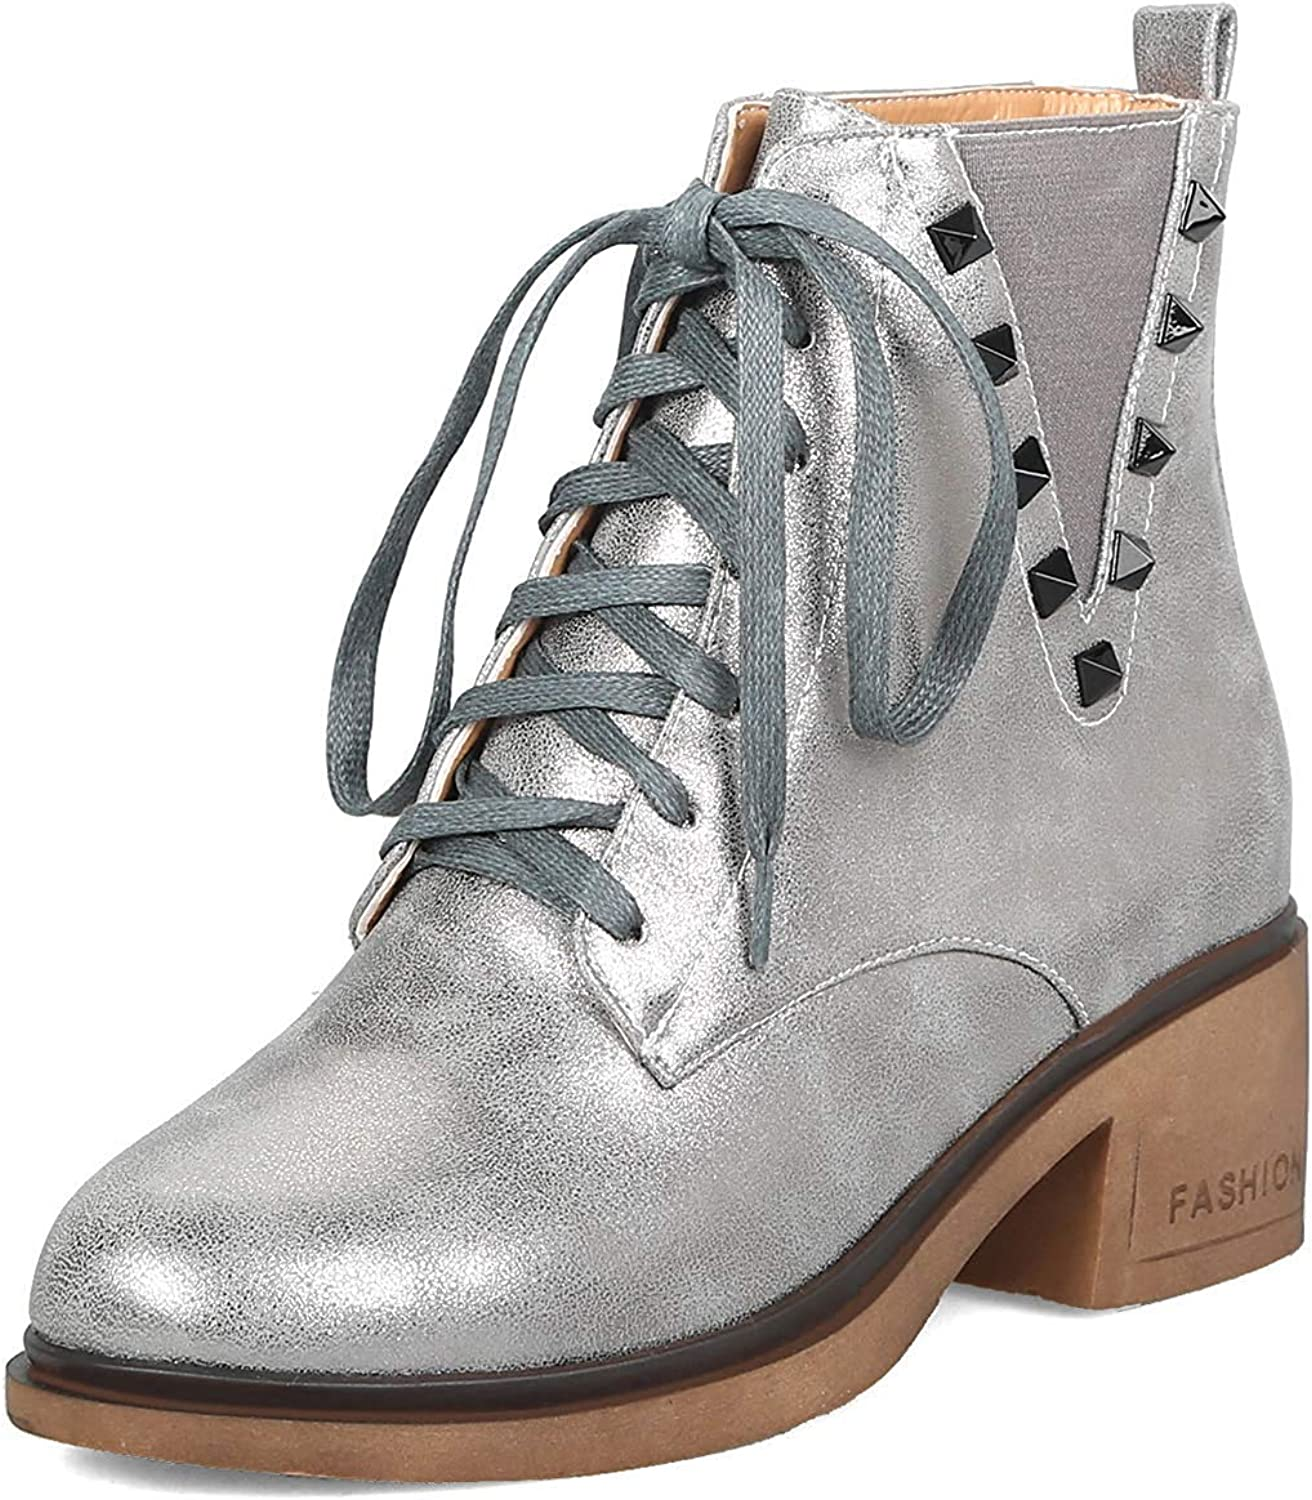 Unm Women's Round Toe Lace Up Short Boots - Stylish Studded Elastic - Mid Chunky Heel Ankle Booties